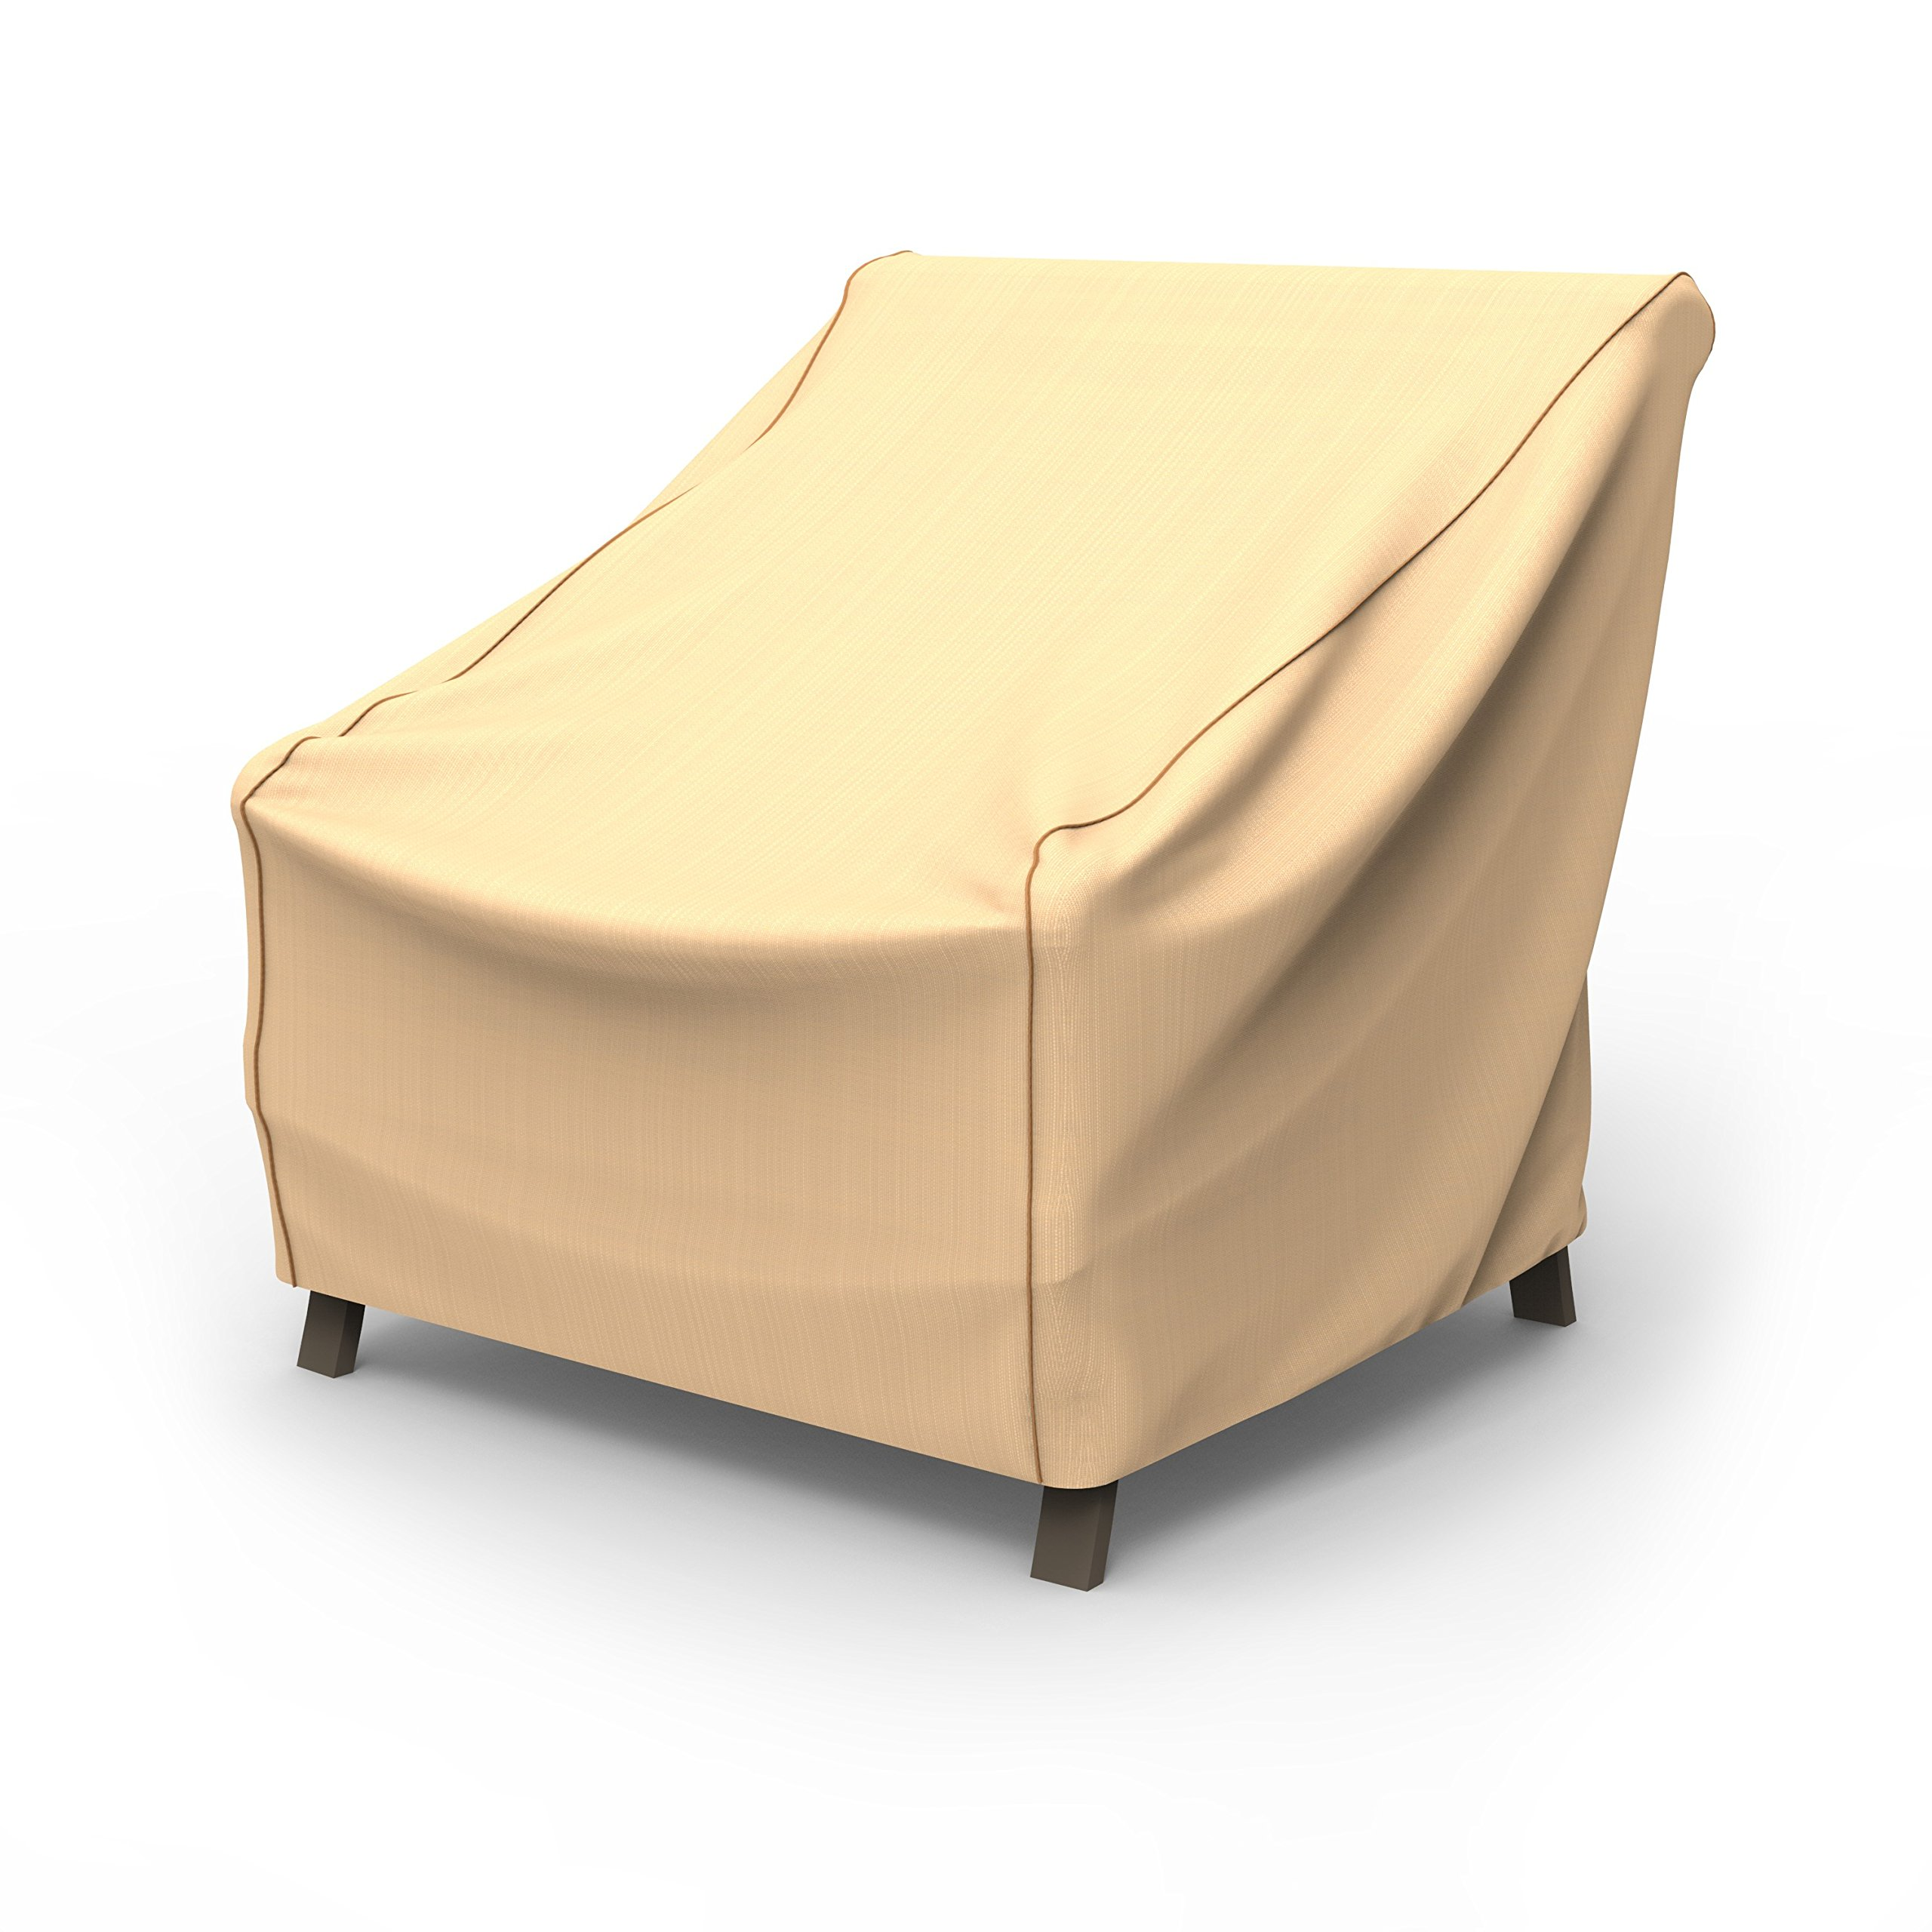 Rust-Oleum NeverWet Patio Chair Cover, Extra Large (Tan)